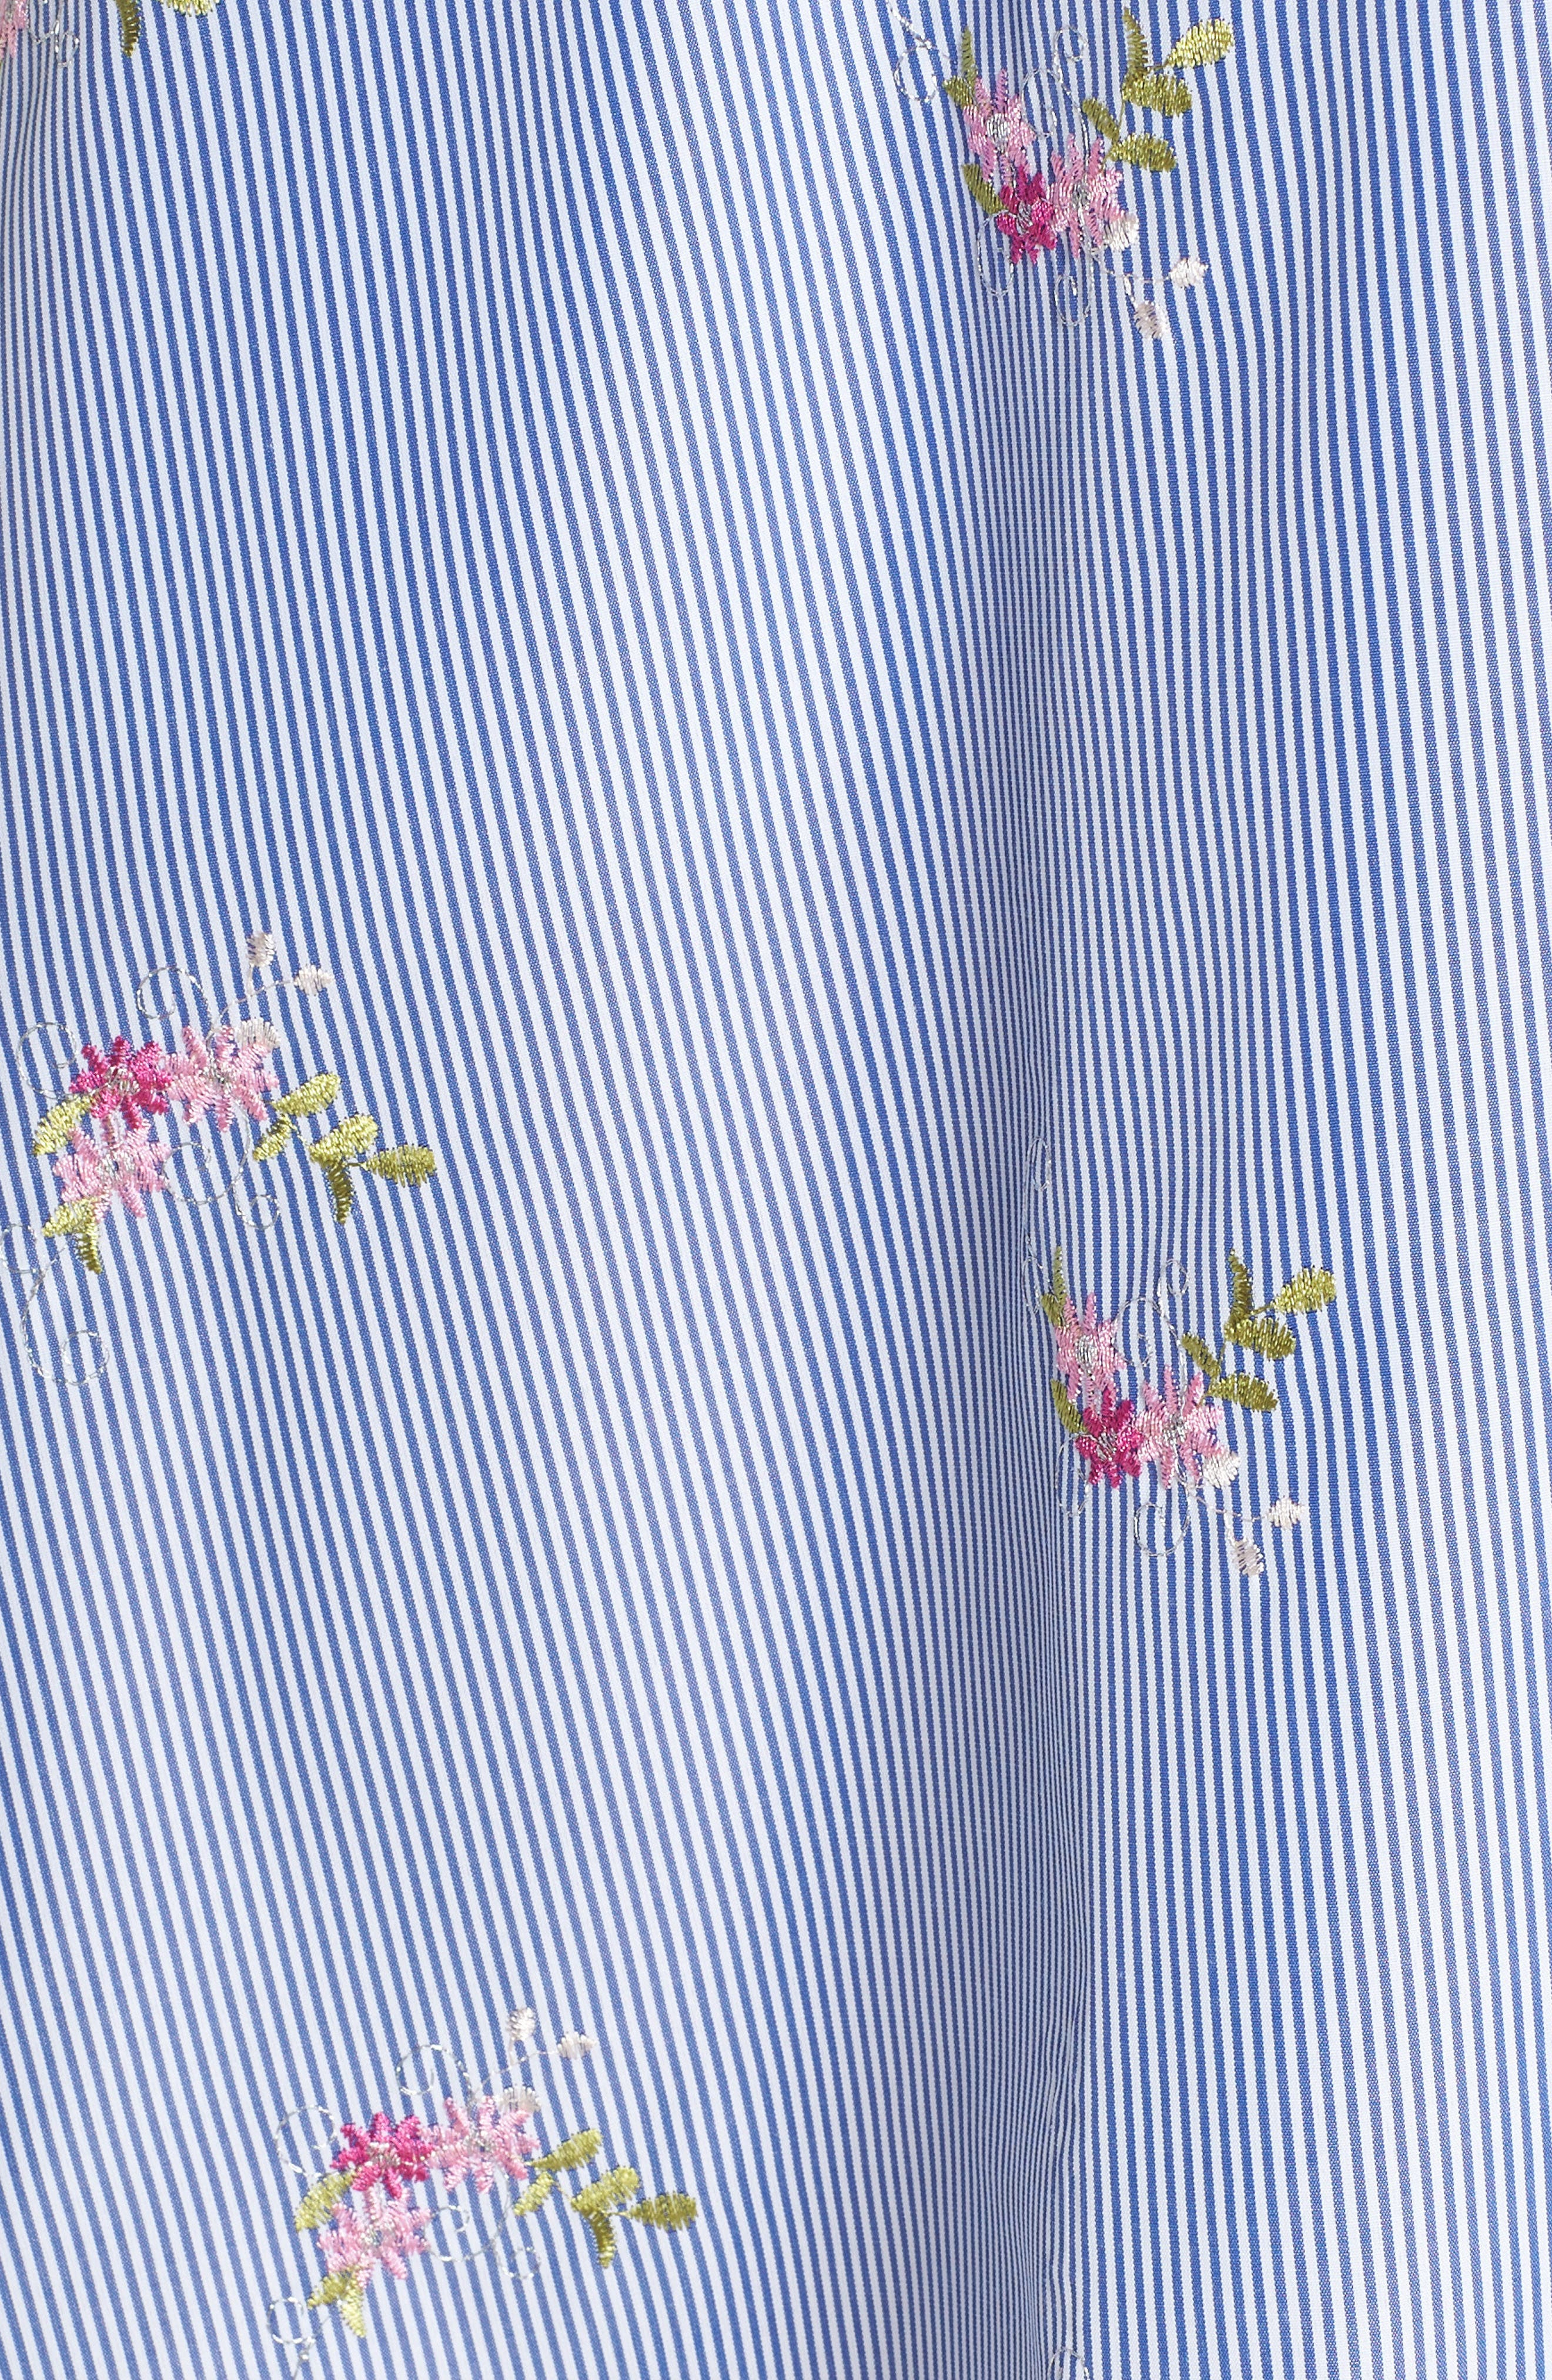 Embroidered Stripe Shirtdress,                             Alternate thumbnail 5, color,                             NAVY/ WHITE/ PINK